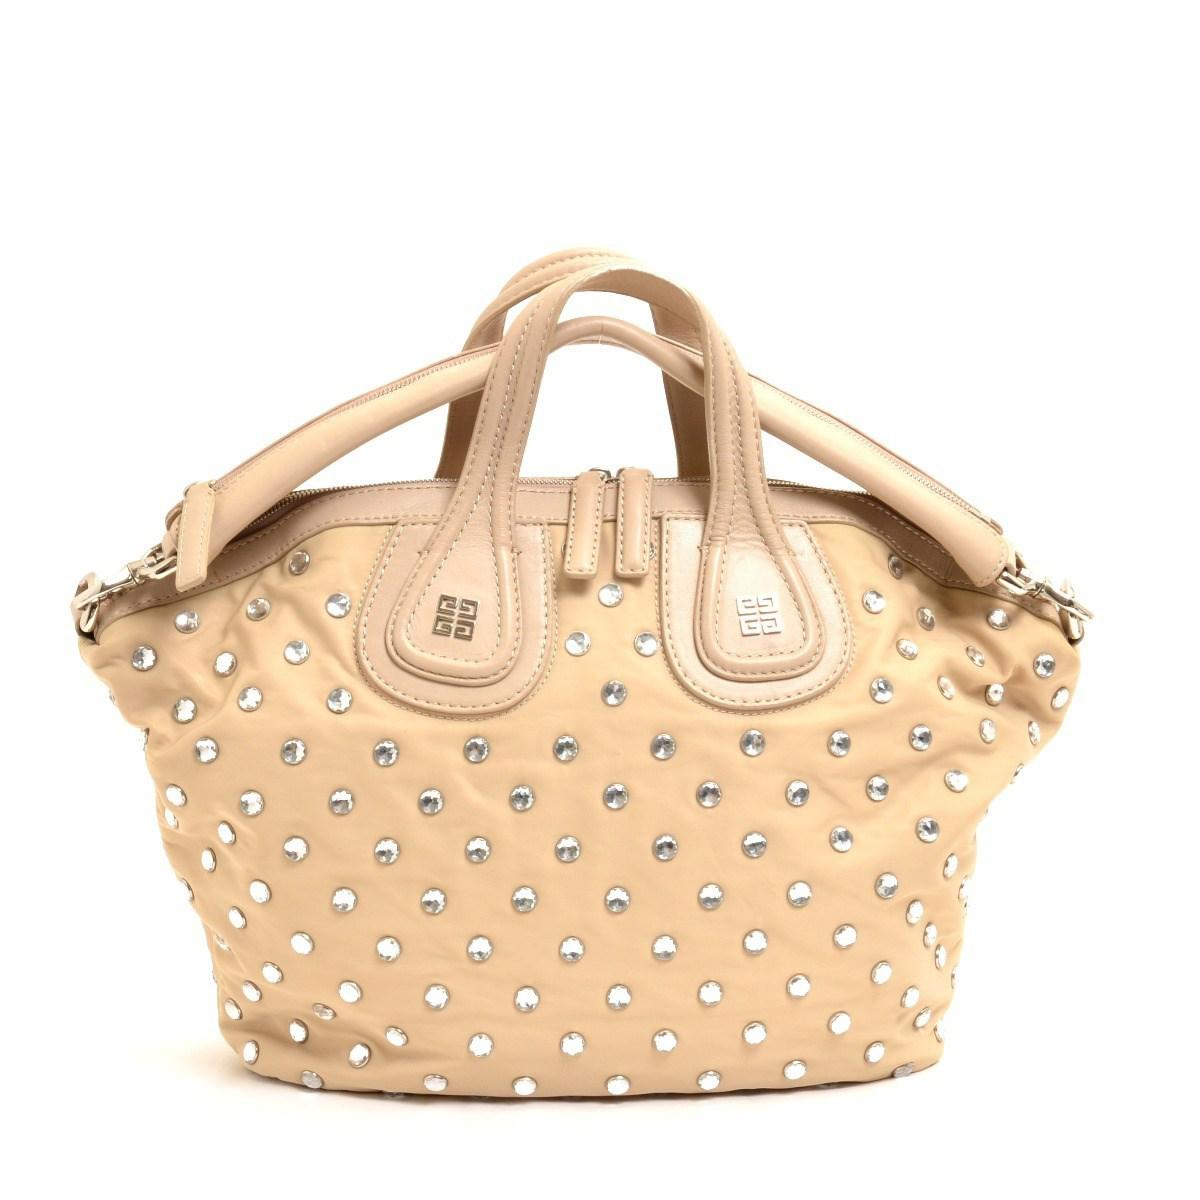 Lyst - Givenchy Leather Nightingale 2 Way Studs St Tote Bag in Natural 8ee205c4ee30a